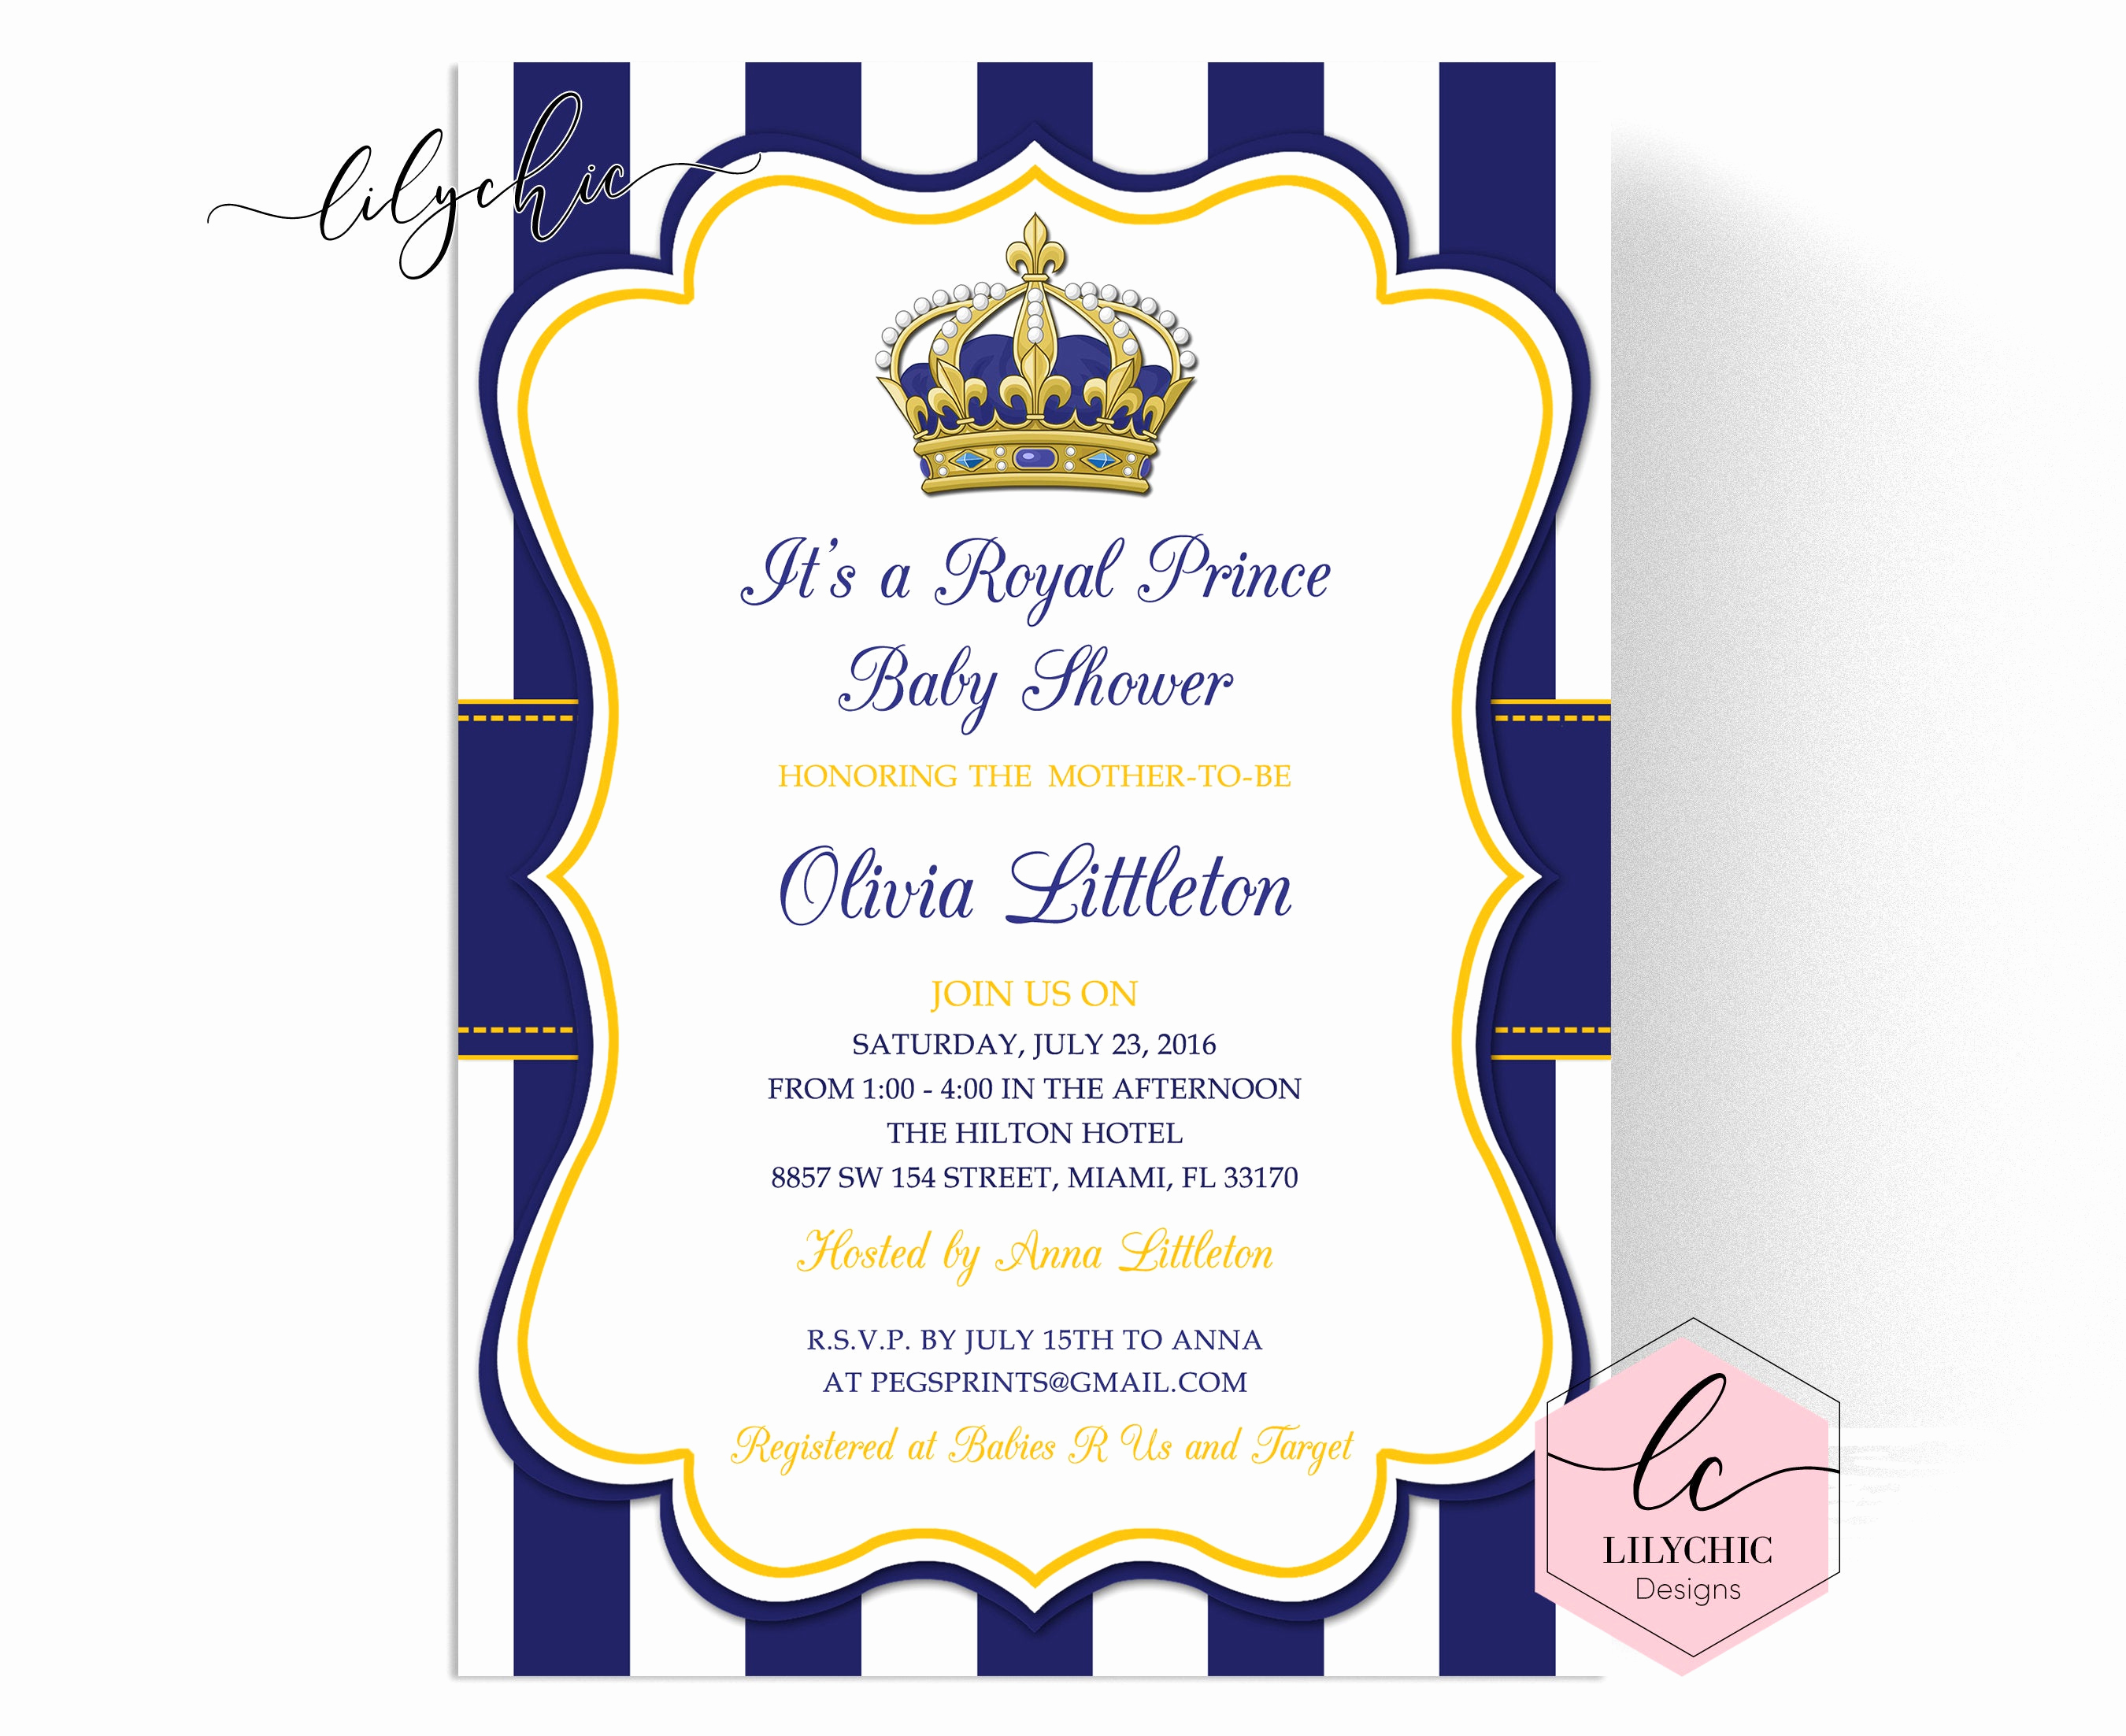 Royal Baby Shower Invitation Awesome Royal Prince Baby Shower Invitations Little Prince Baby